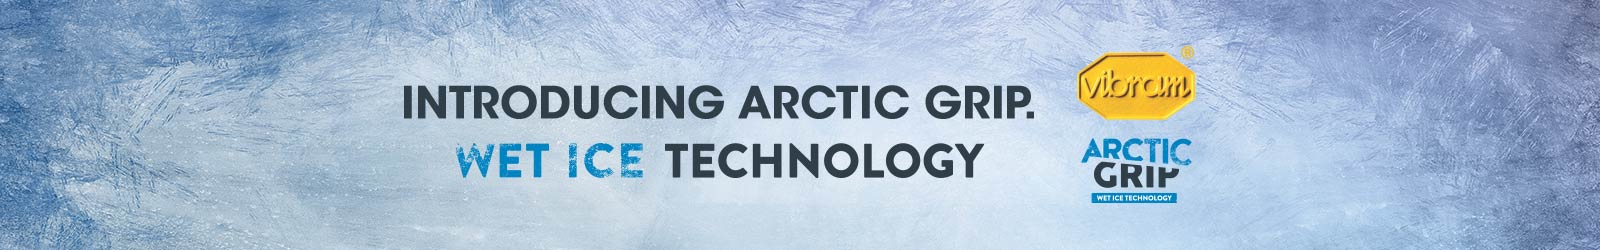 Introducing Arctic Grip. Wet Ice Technology | Vibram | Arctic Grip